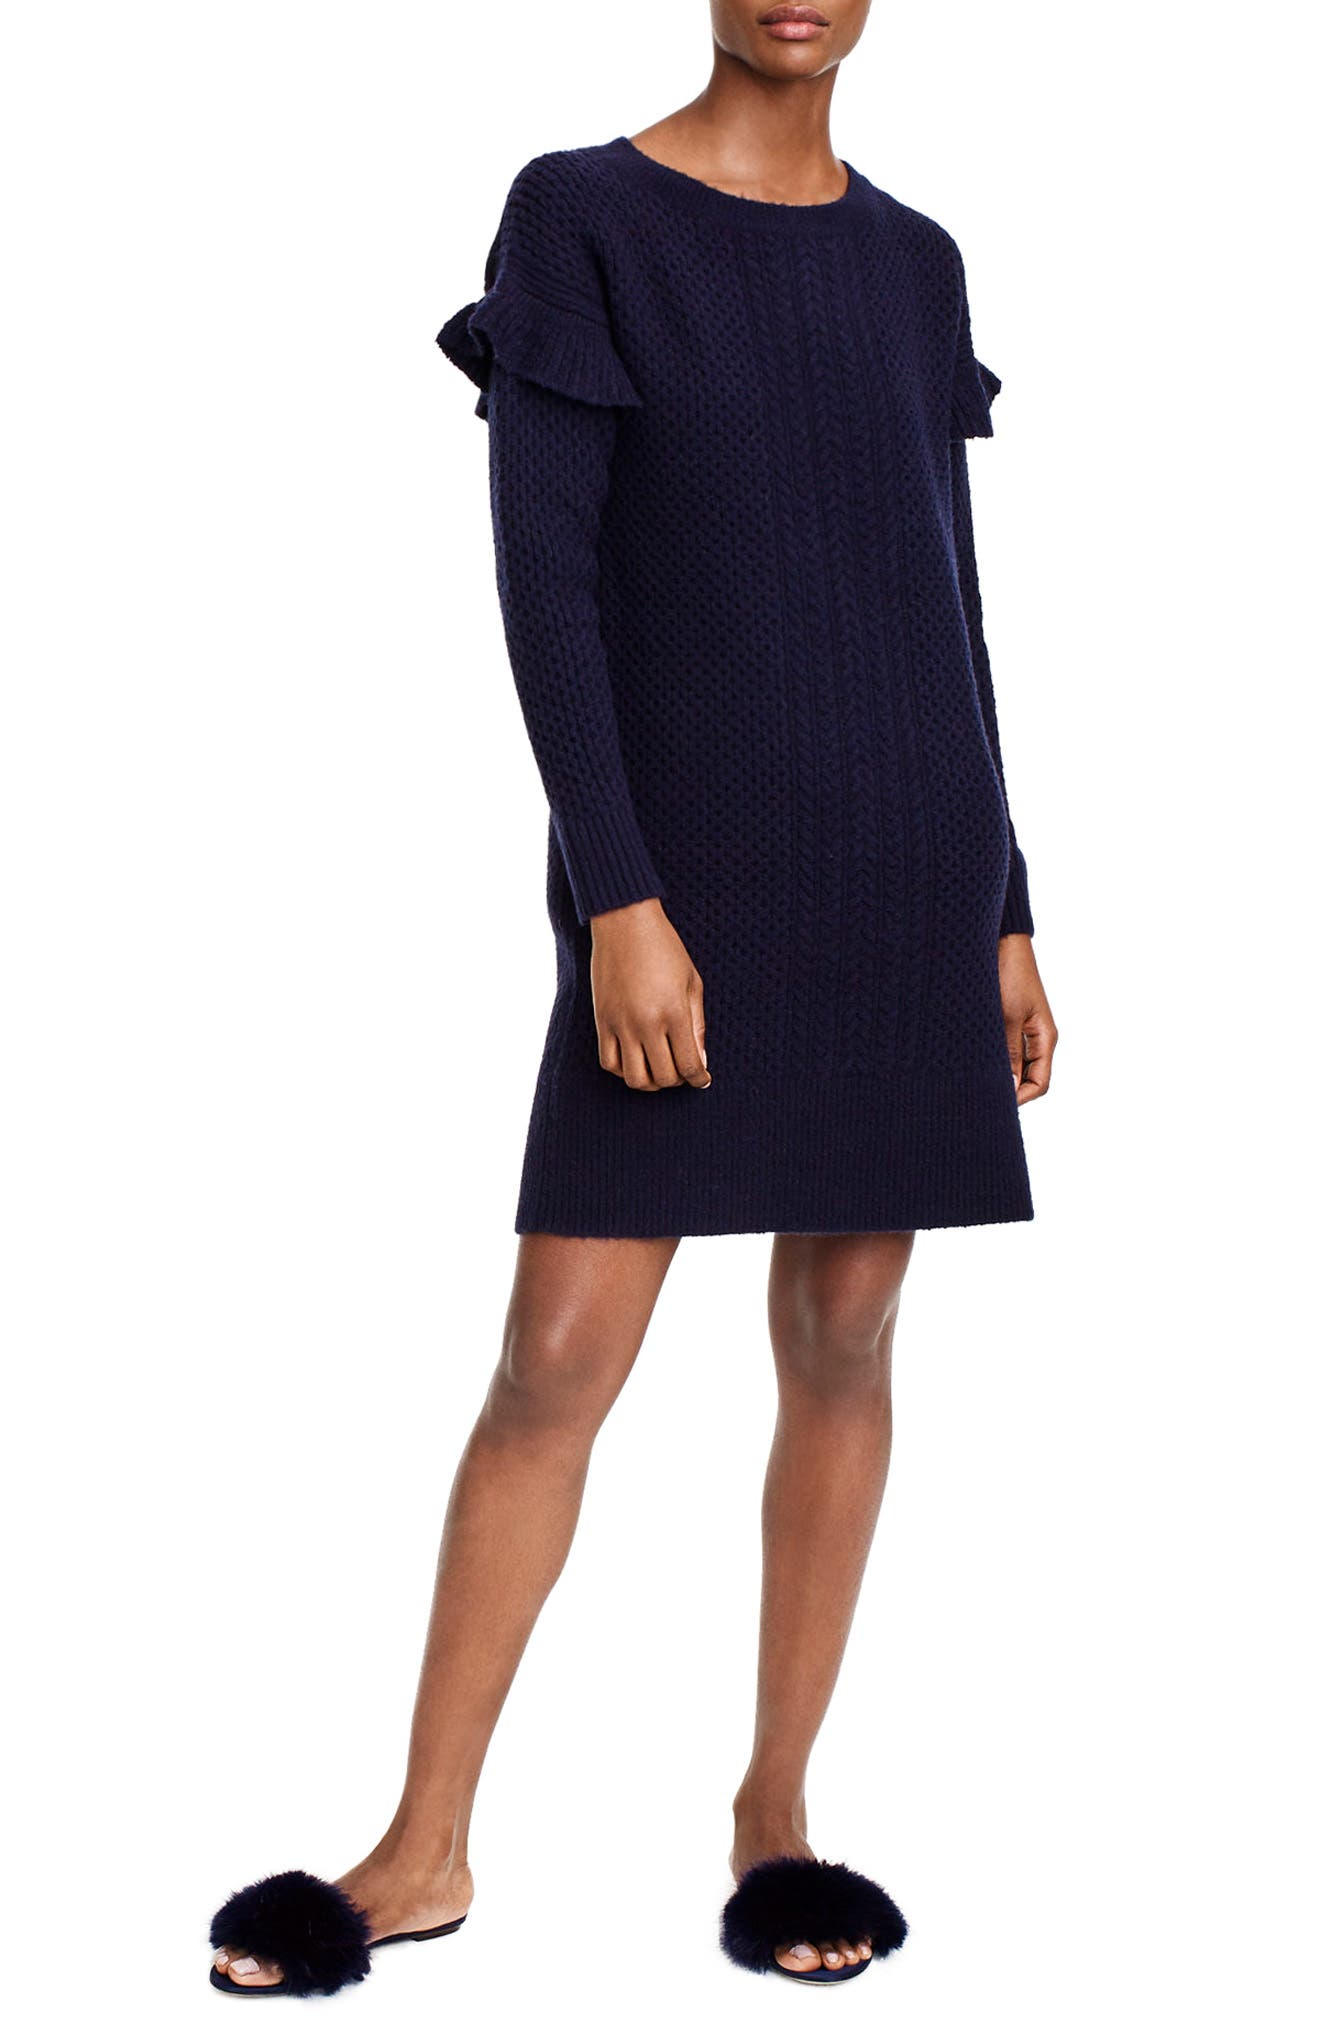 Holden Ruffle Sleeve Cable Knit Sweater Dress,                         Main,                         color, Navy